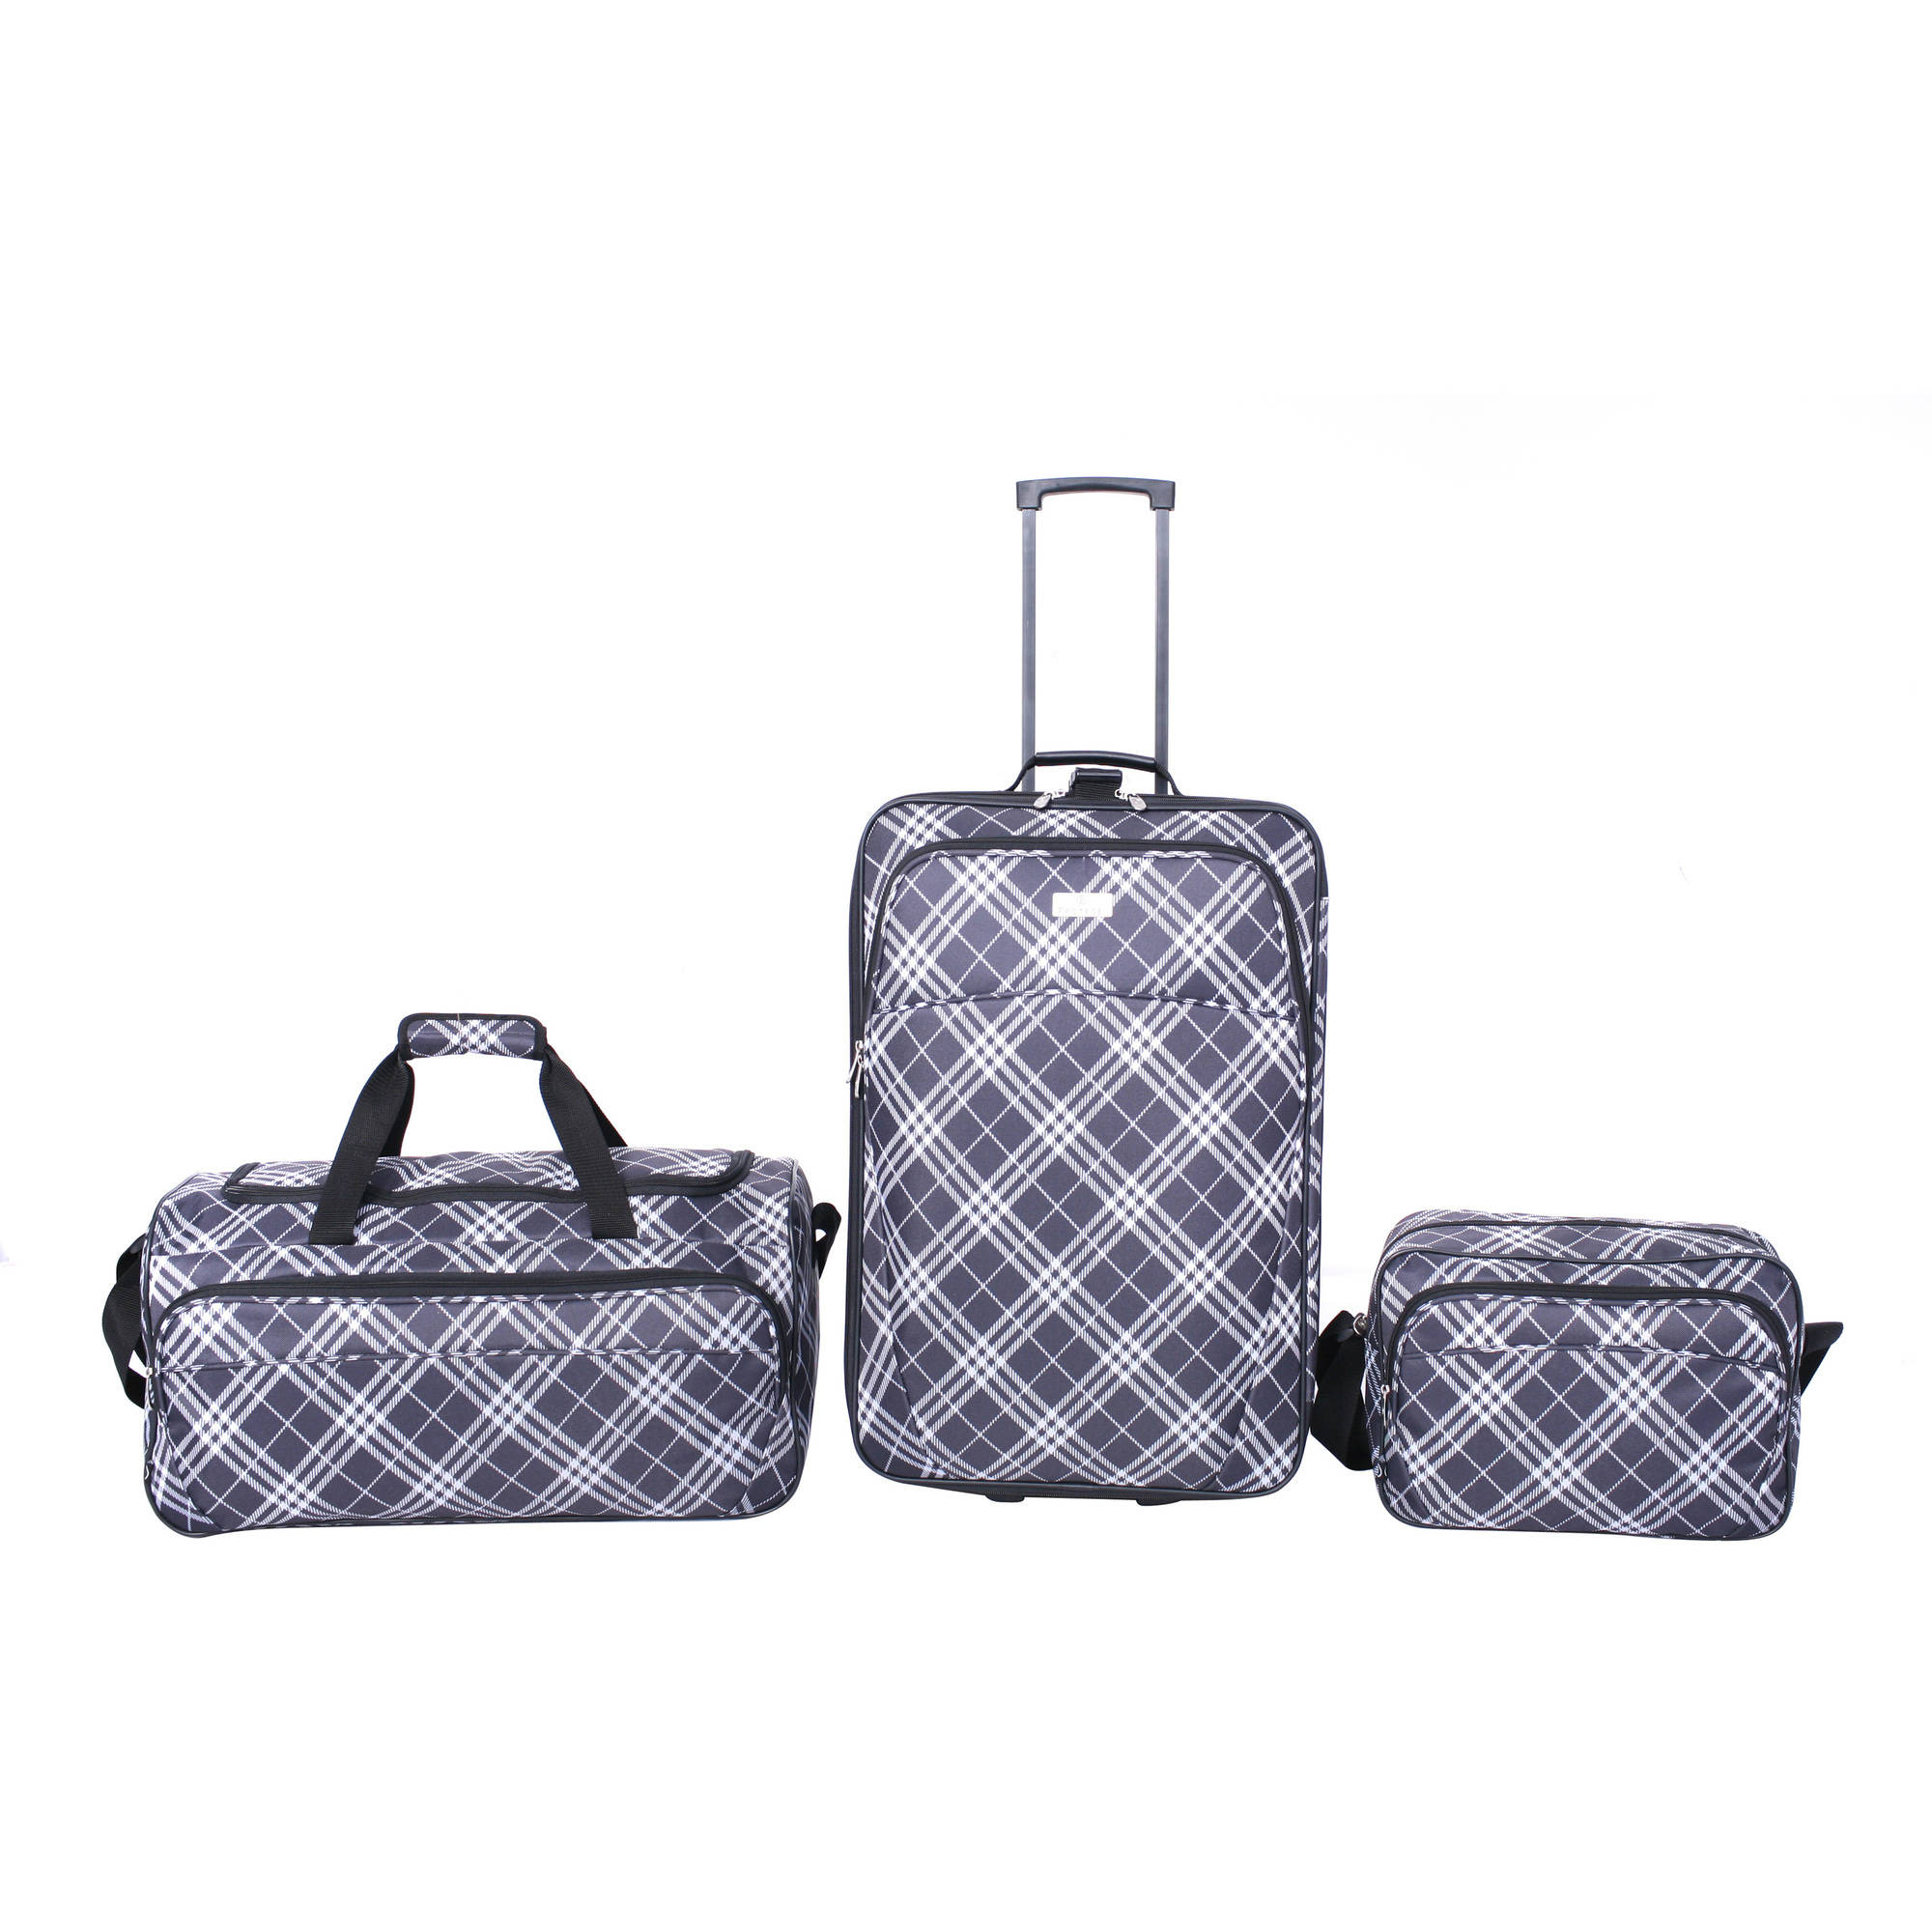 Protege 3-Piece Plaid Luggage Set